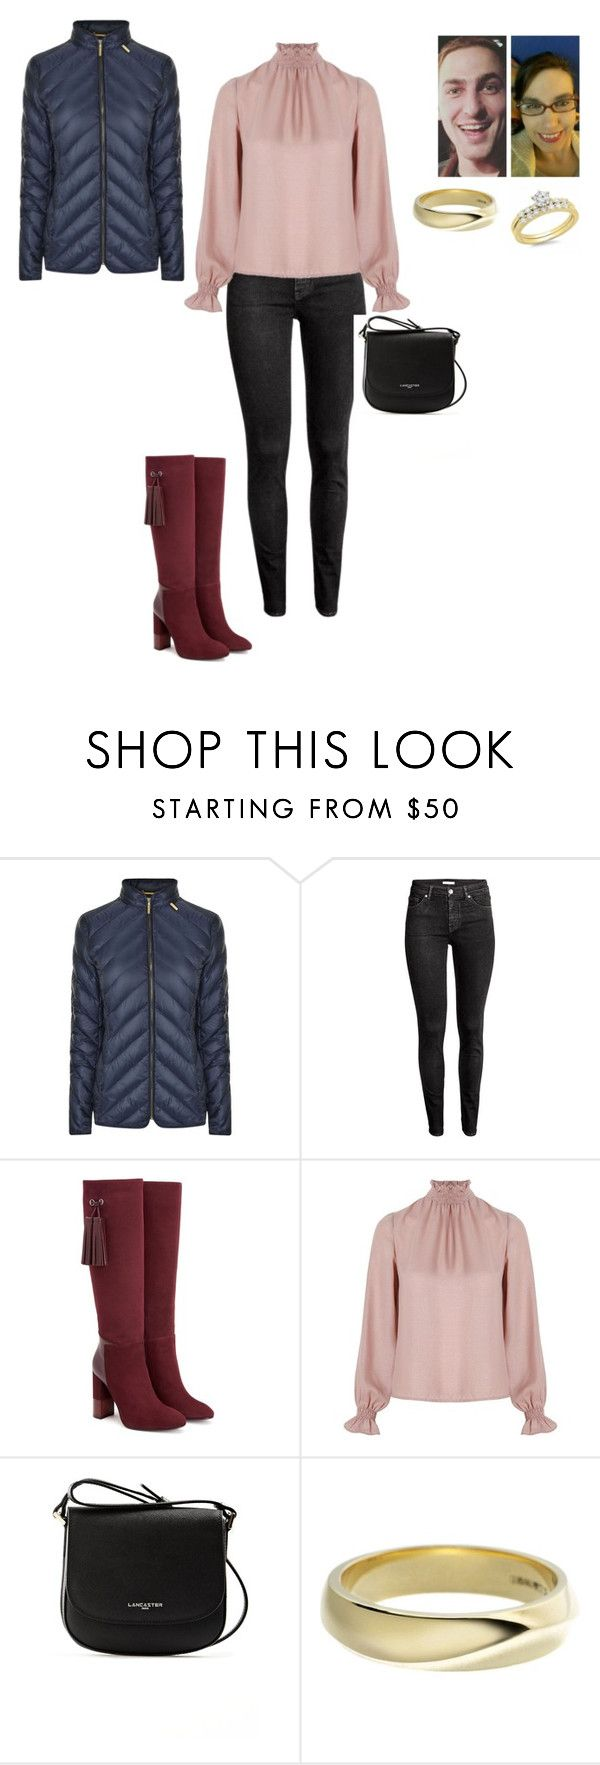 """""""Happy Sunday to you all"""" by joydjschmidt ❤ liked on Polyvore featuring MICHAEL Michael Kors, H&M, Aquatalia by Marvin K., Related, Lancaster and Shaun Leane"""